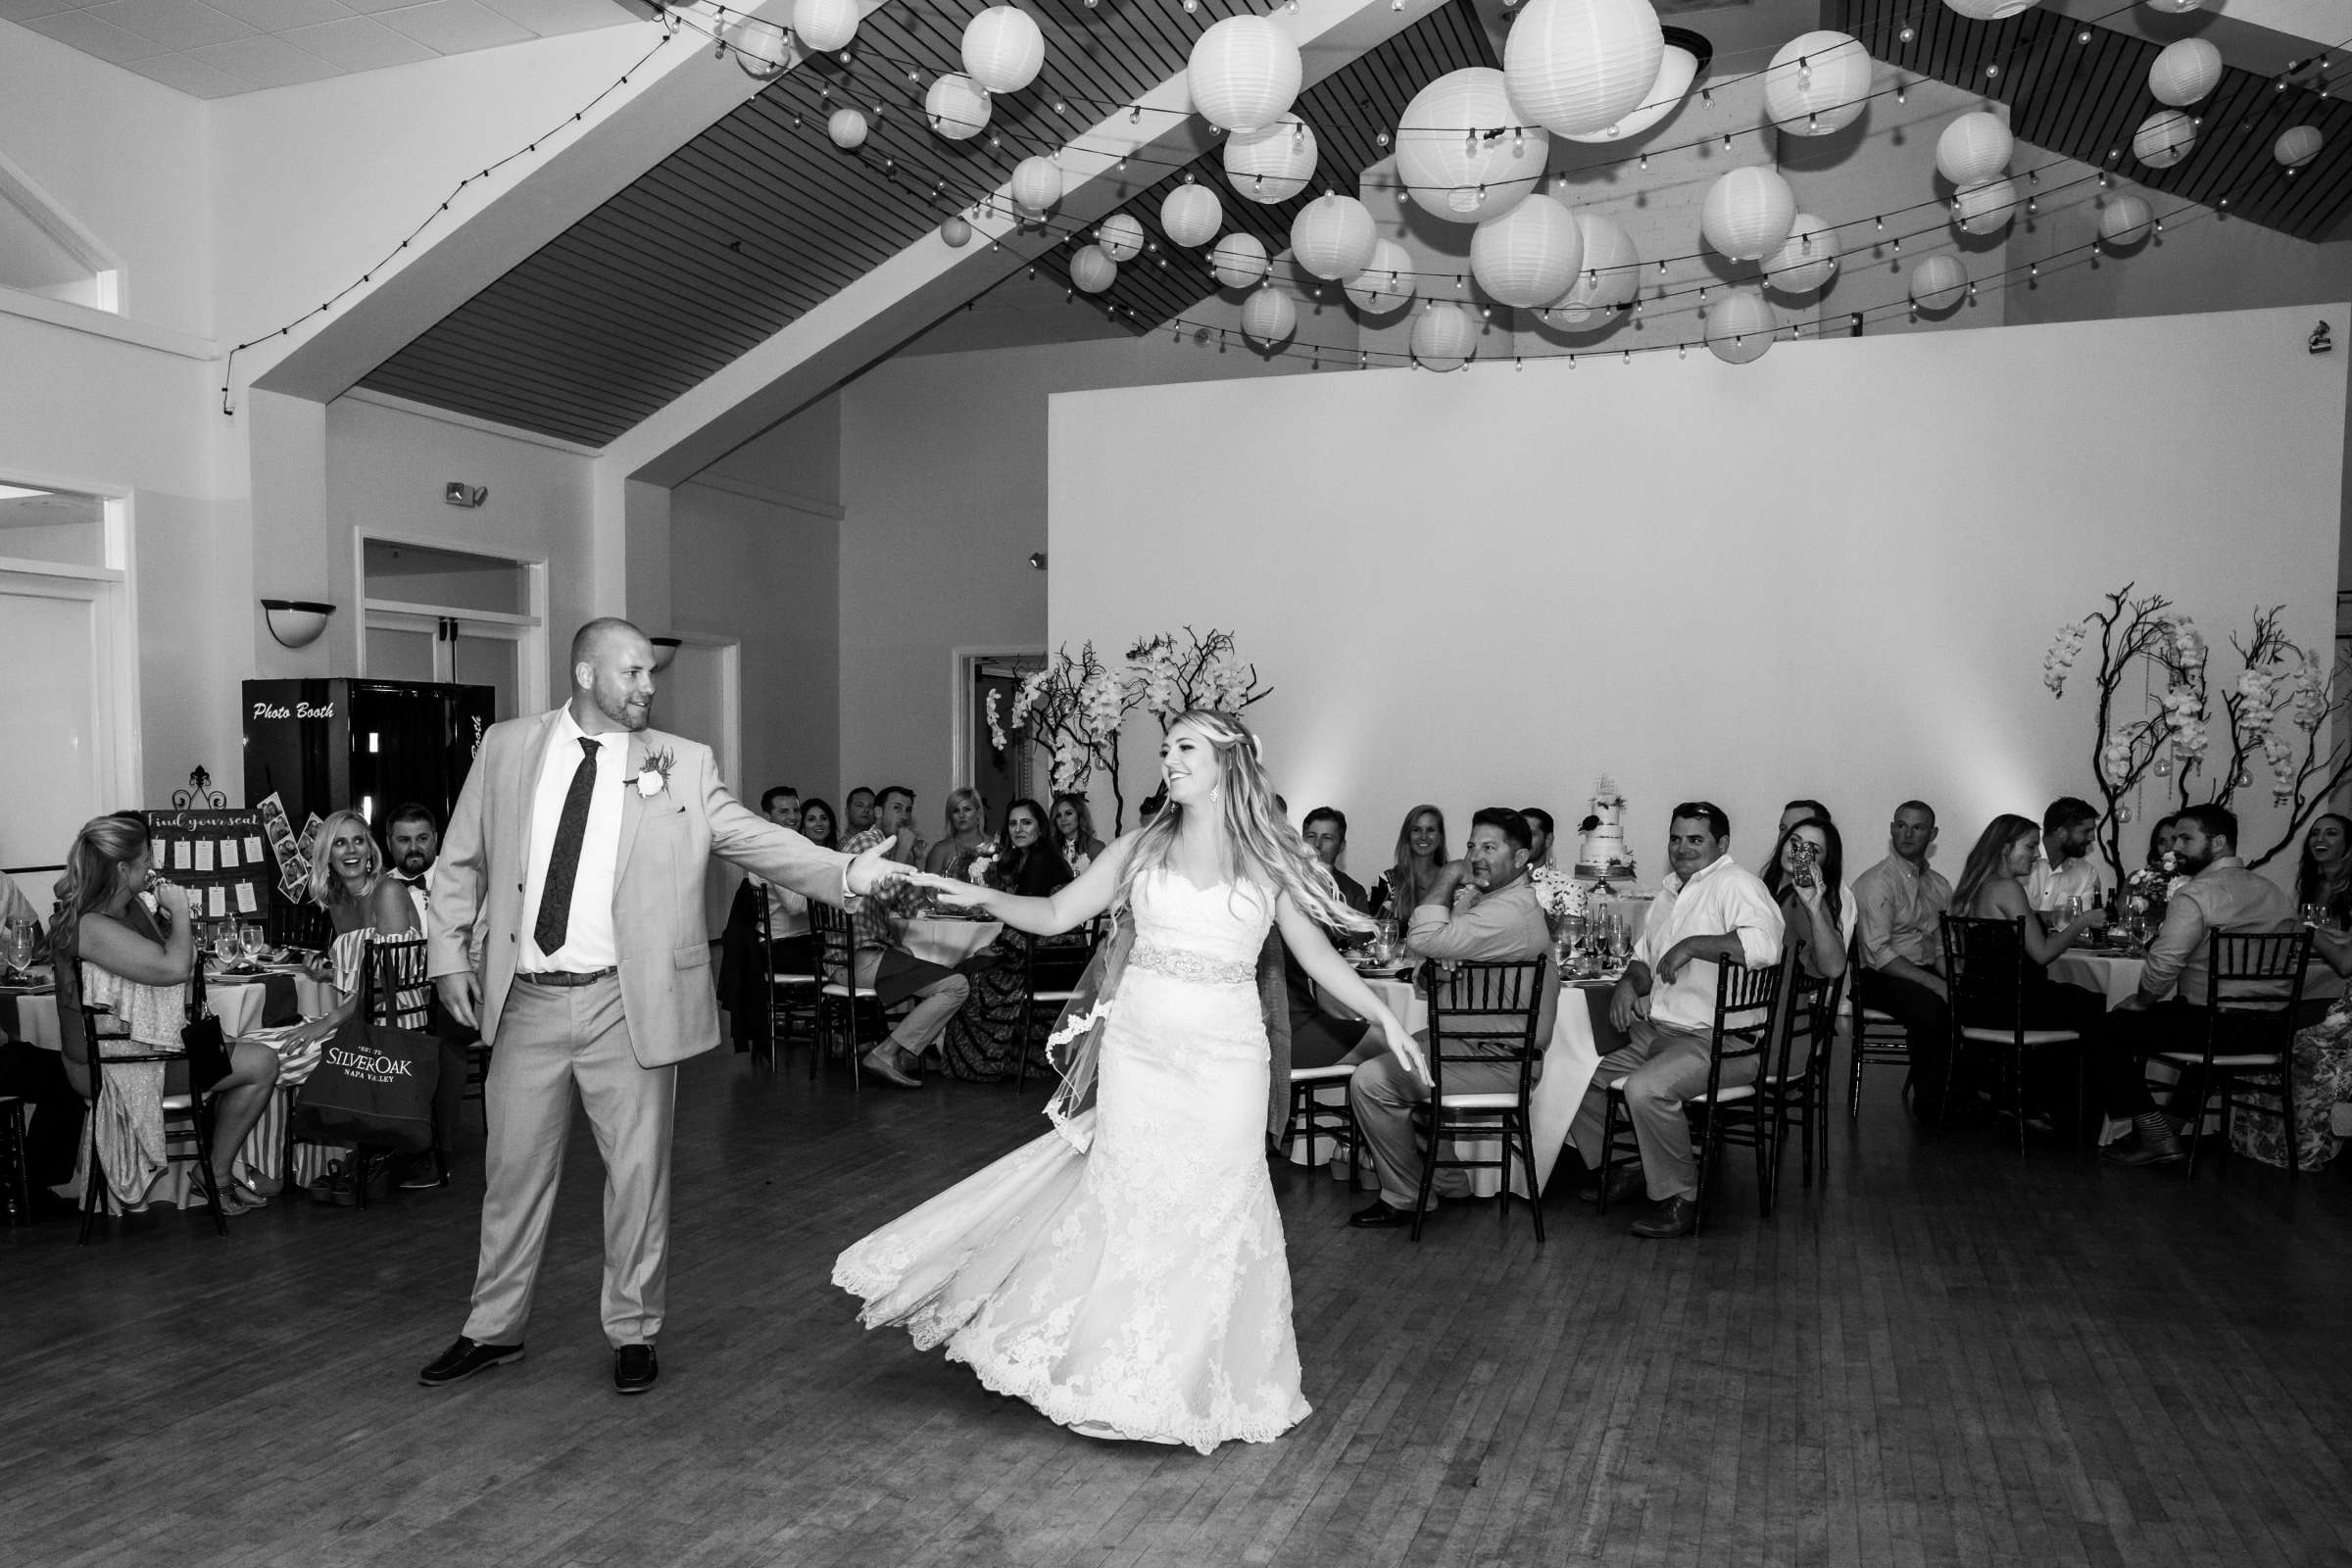 Cuvier Club Wedding coordinated by The Abbey Catering, Chelsey and Eric Wedding Photo #31 by True Photography